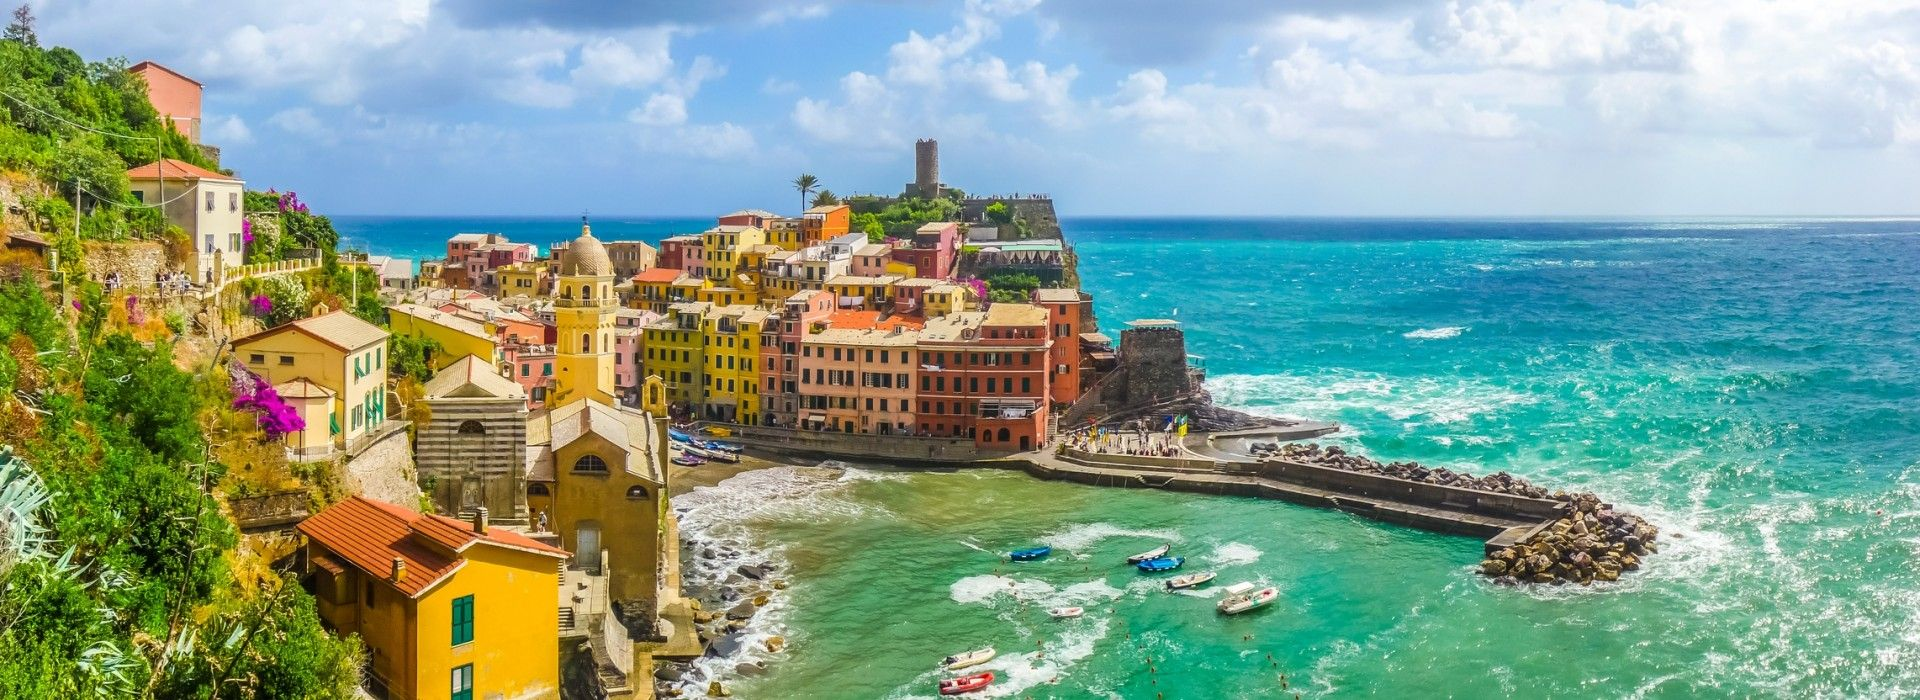 Sailing, yachting and motor boating Tours in Rome